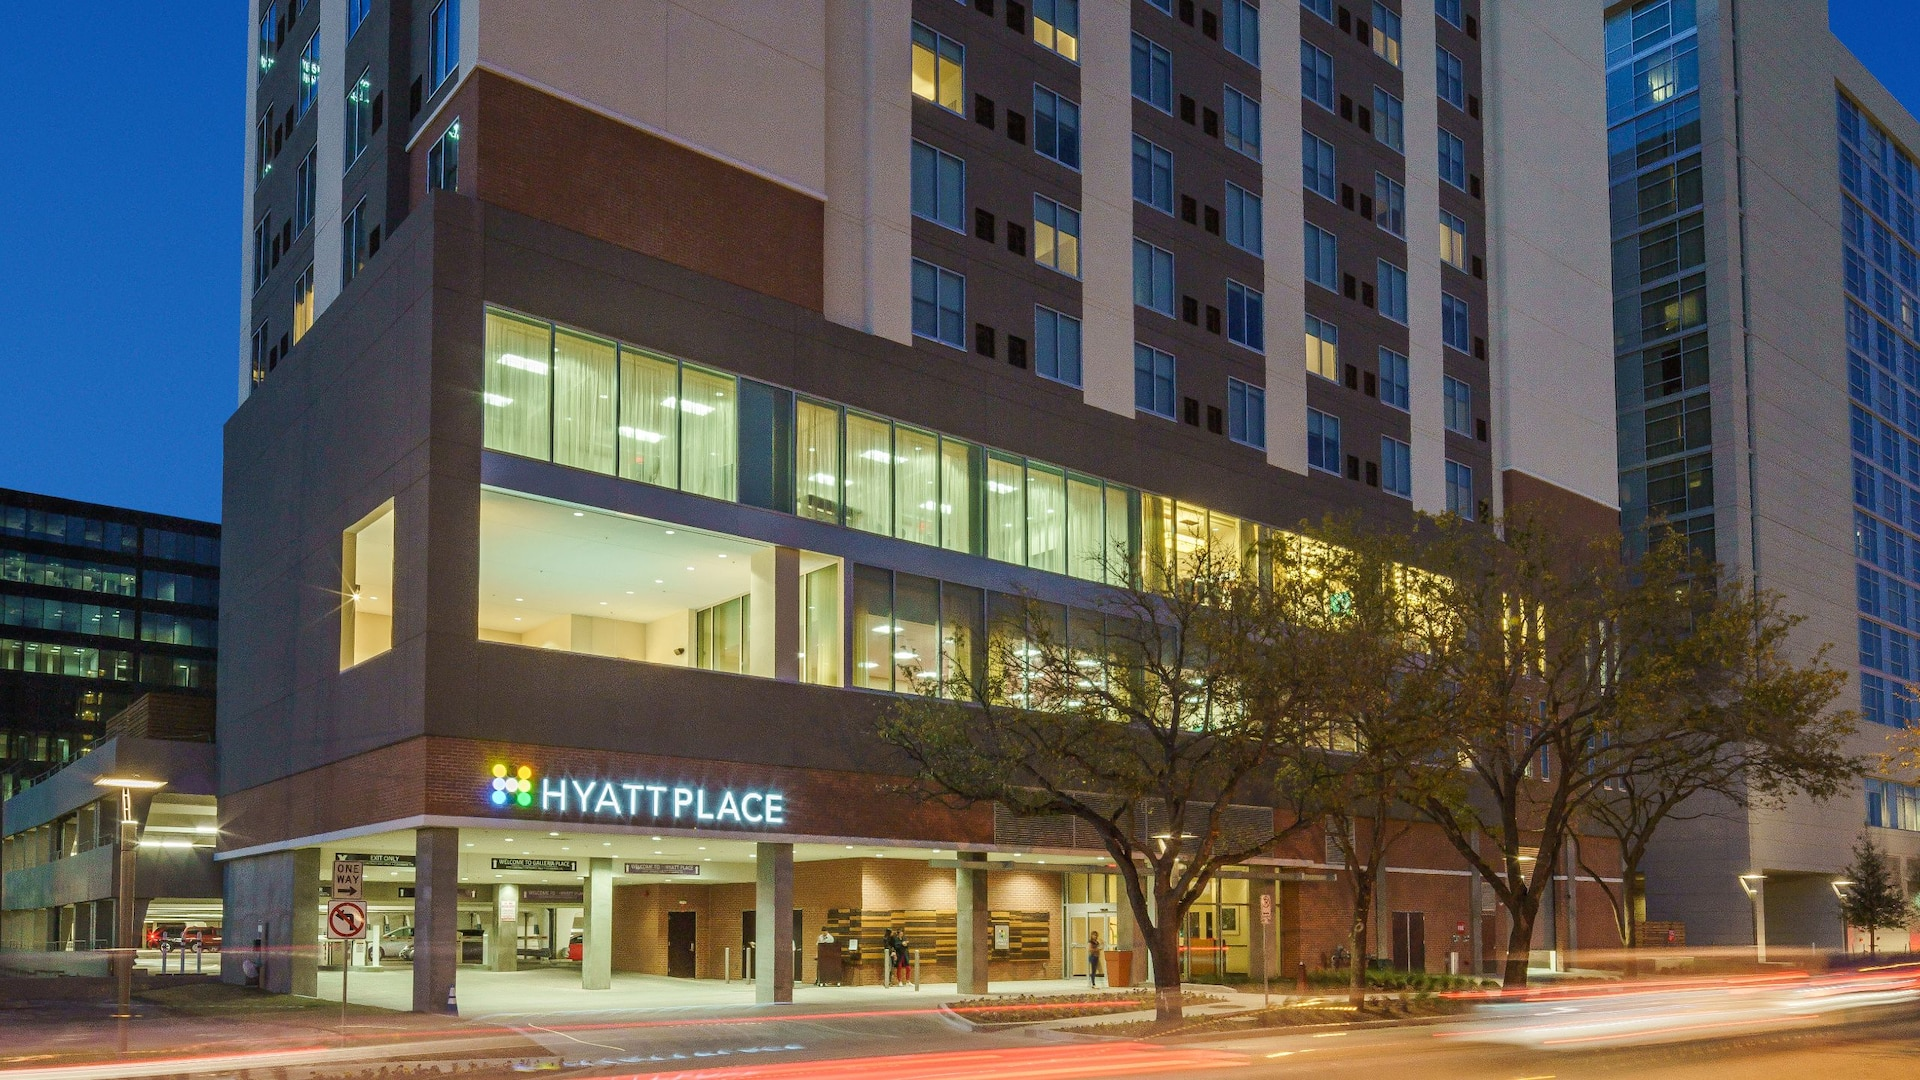 Hyatt Place Houston / Galleria hotel exterior